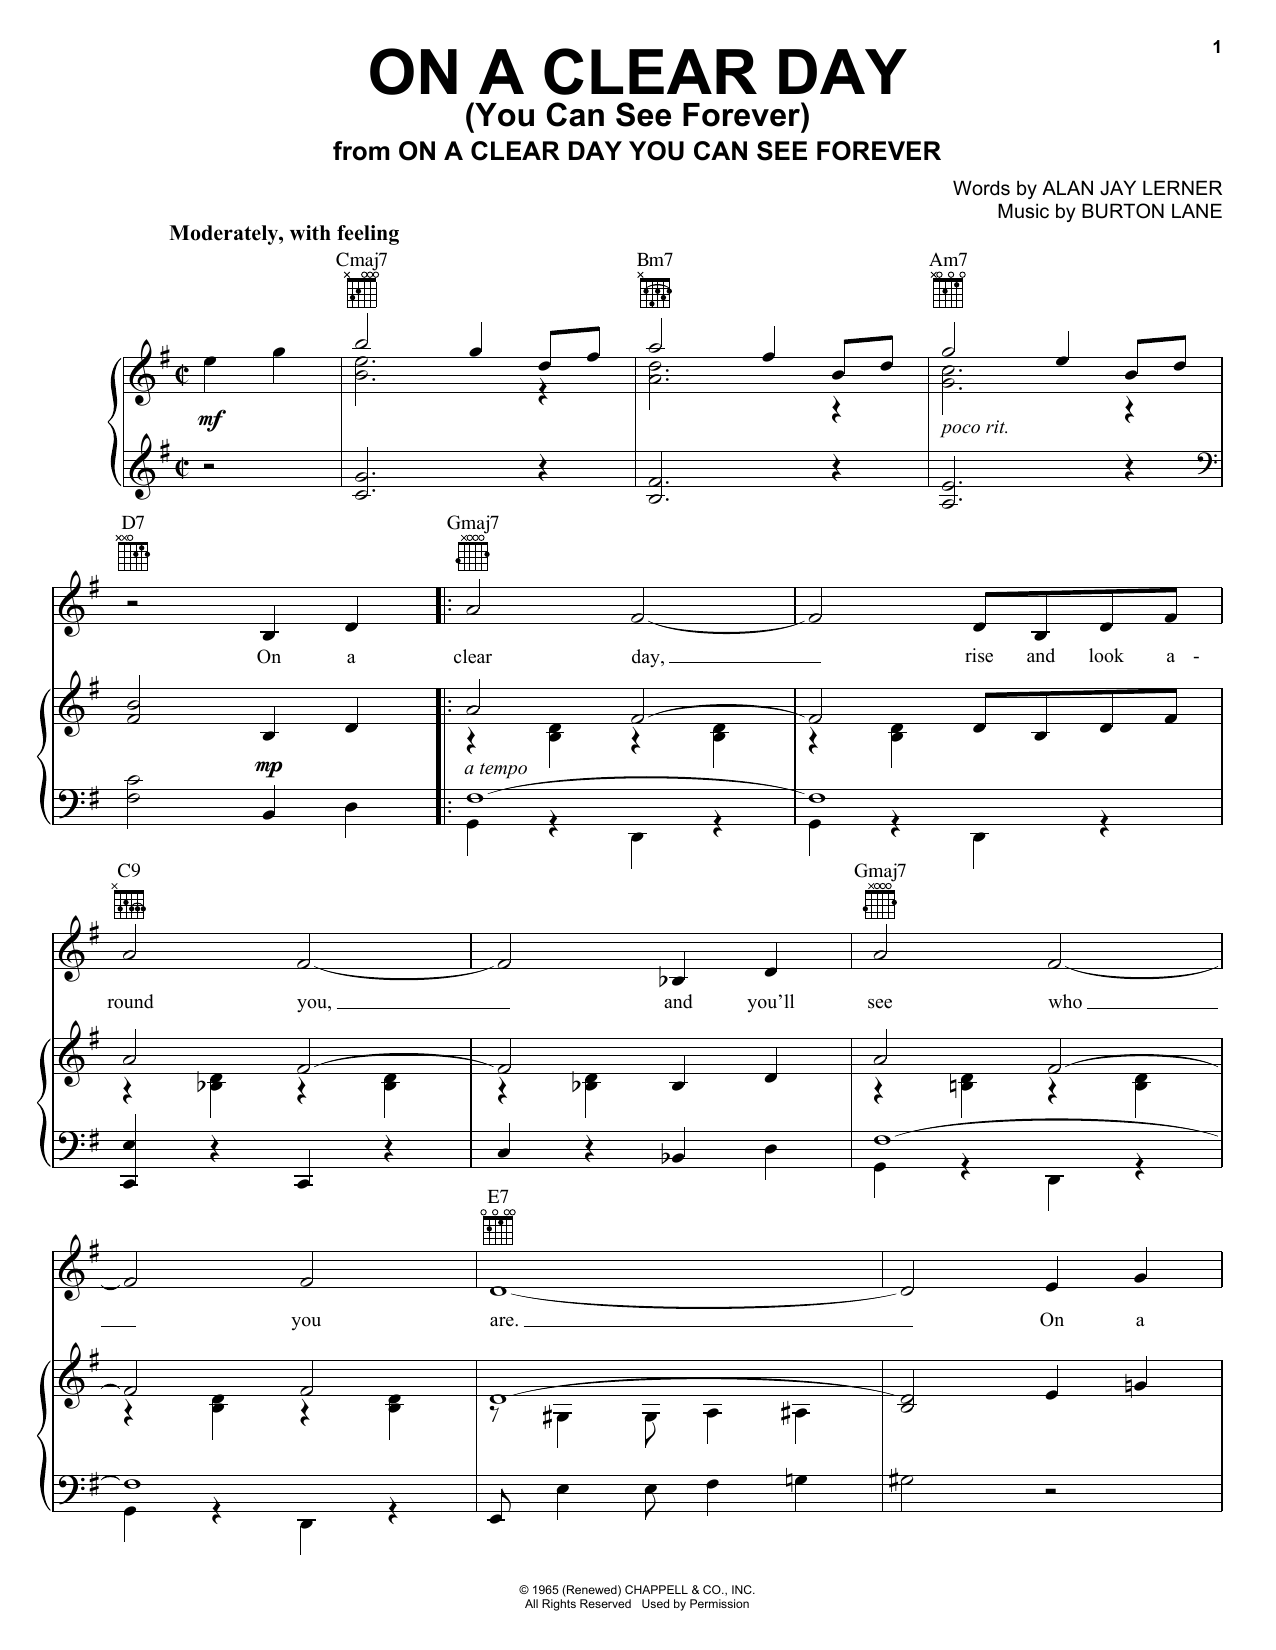 Frank Sinatra On A Clear Day (You Can See Forever) sheet music notes and chords